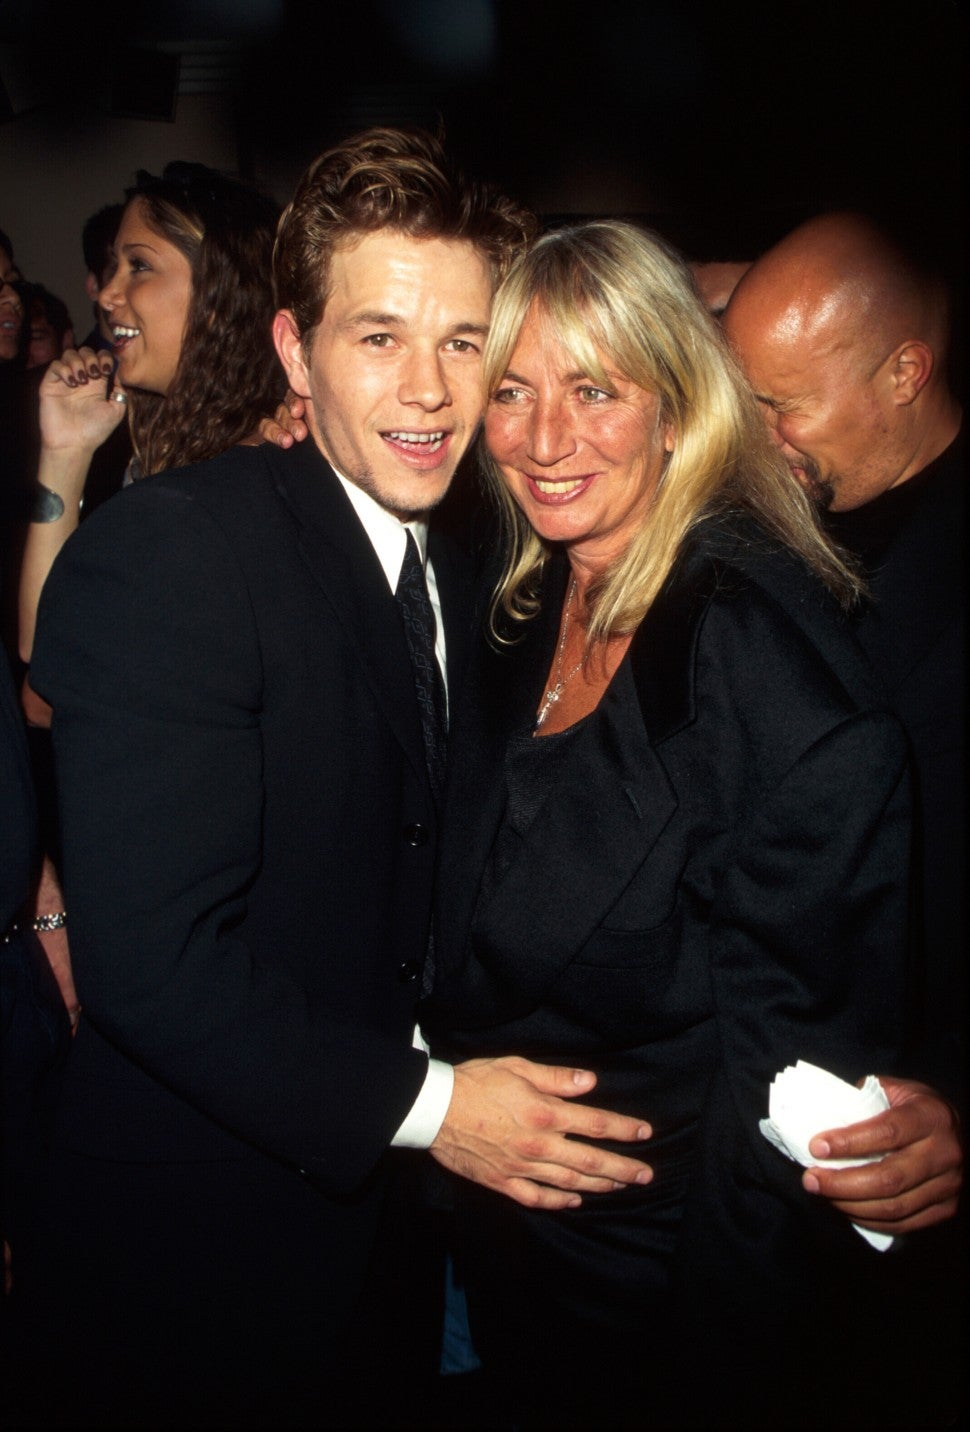 Actor Mark Wahlberg and actress/director Penny Marshall.